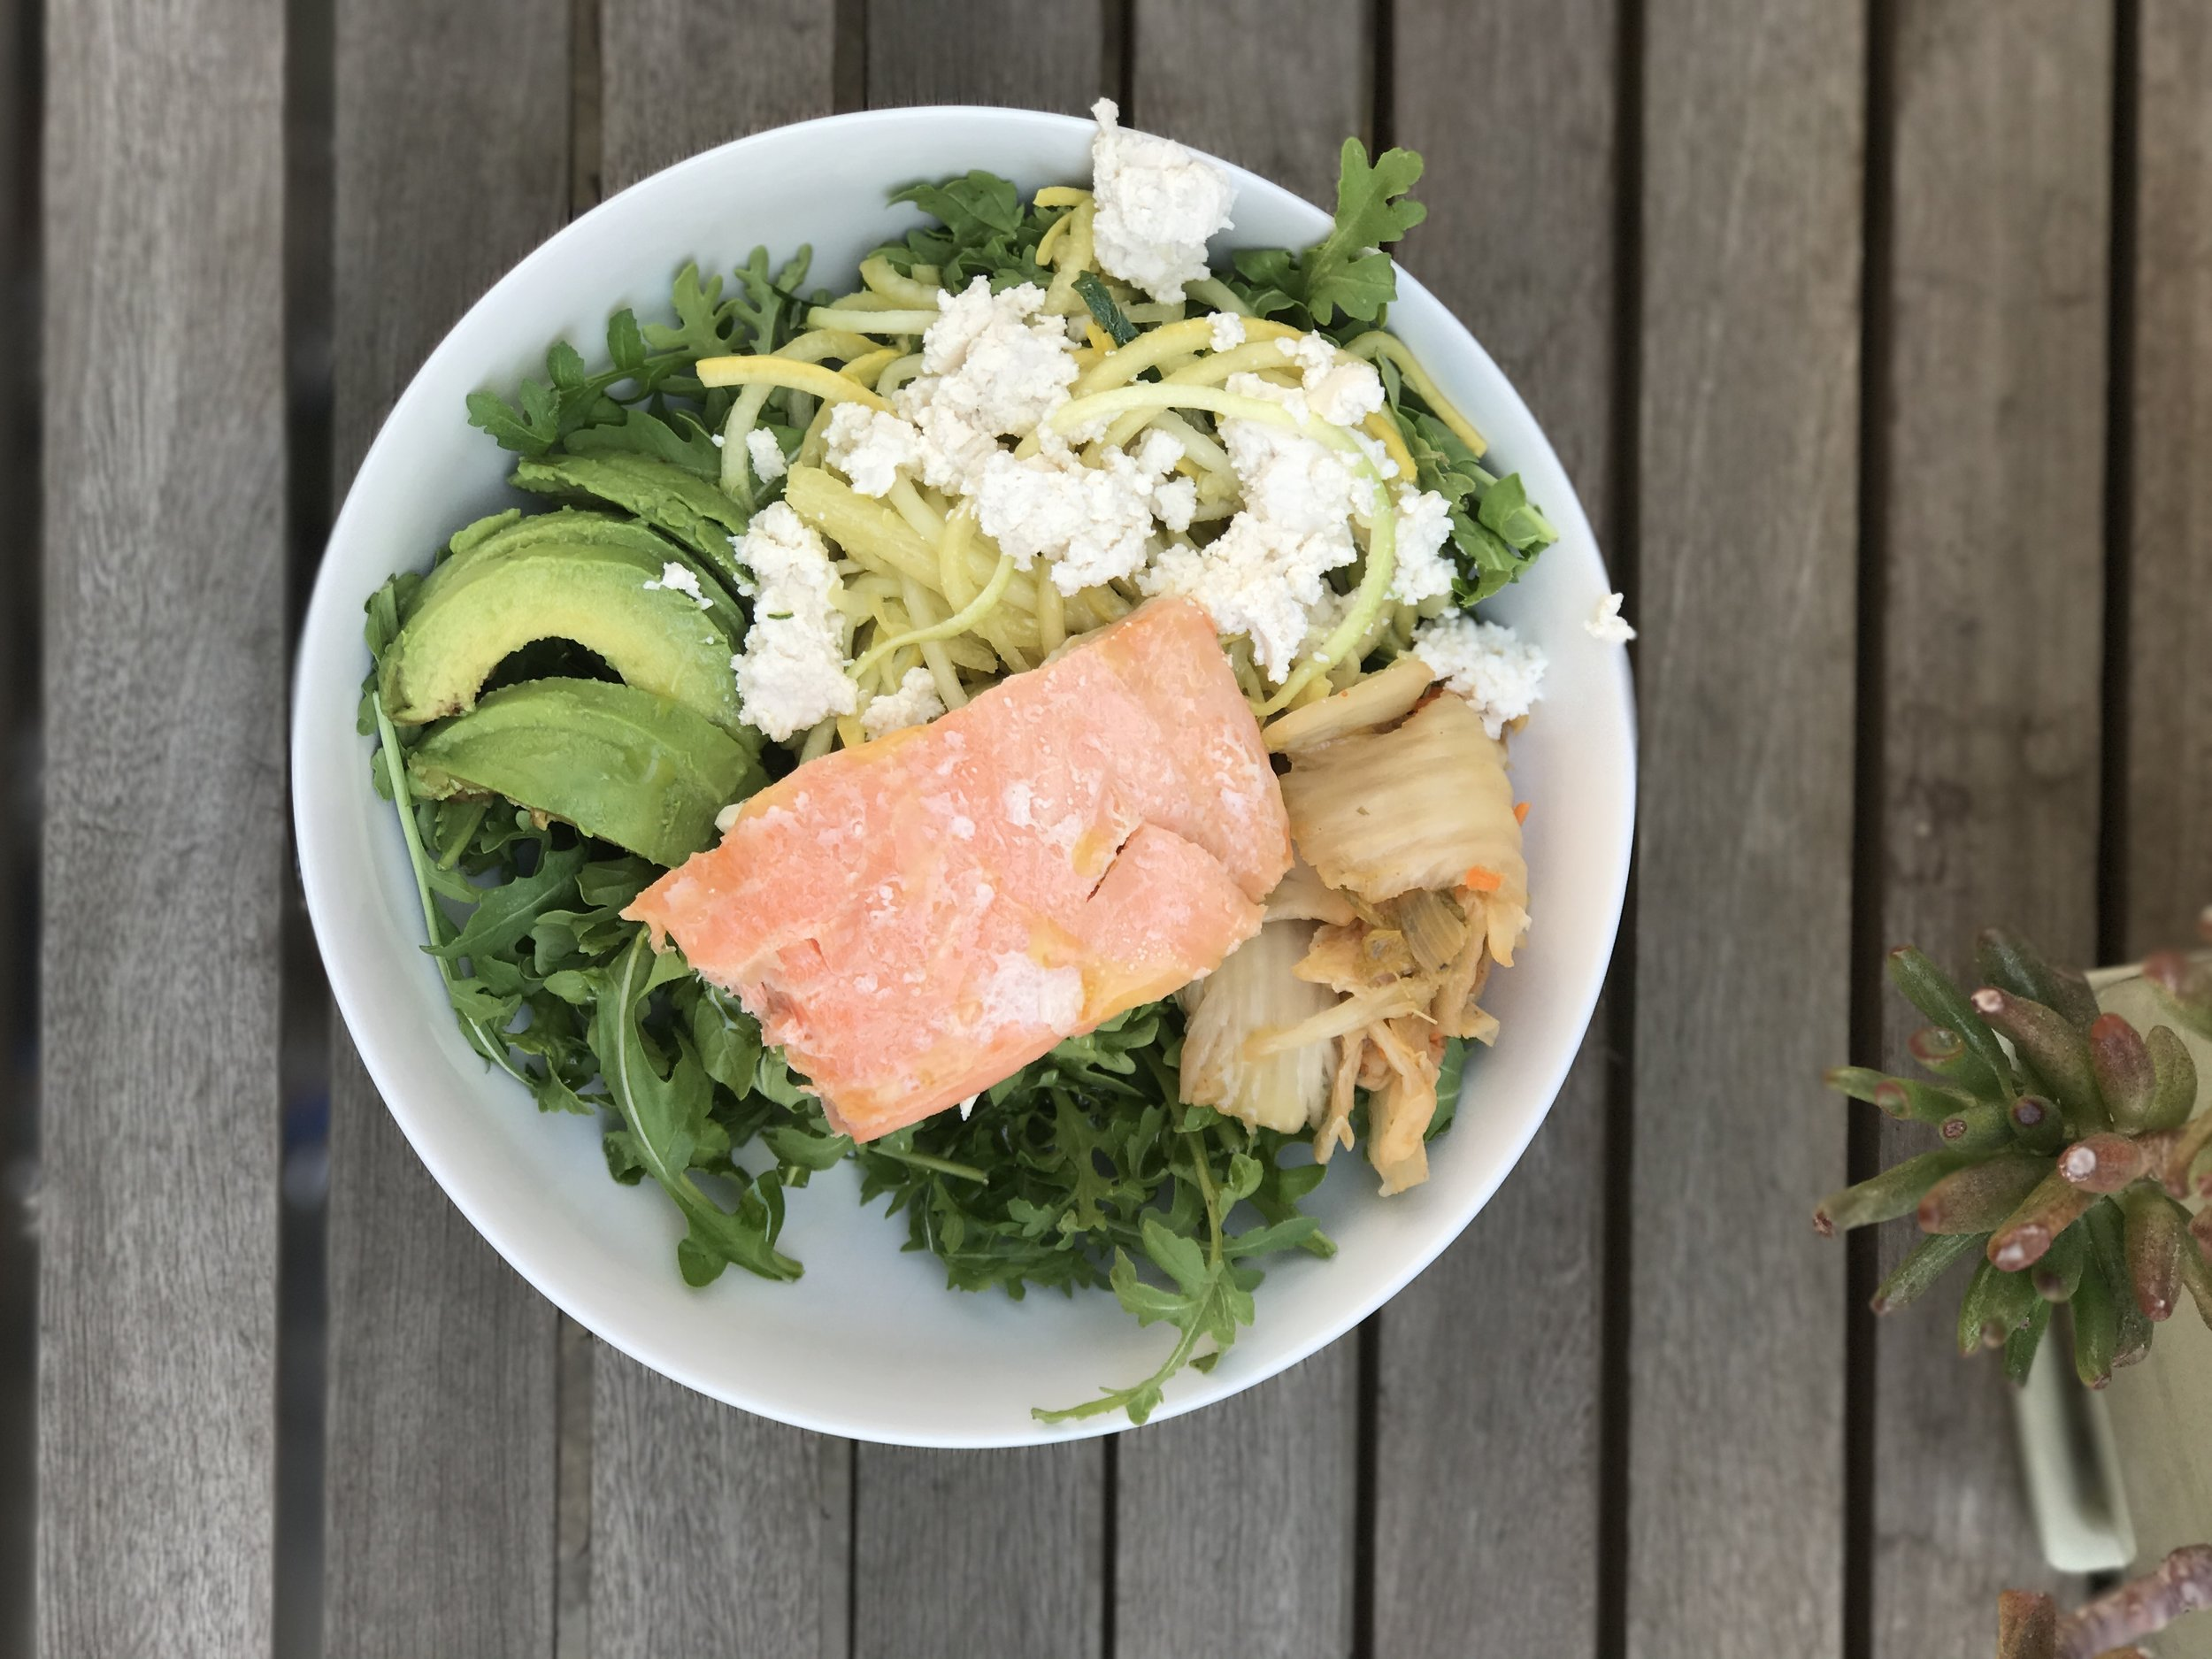 Keto Diet salad. Greens, low-carbohydrate vegetables, and healthy fats from salmon, avocado, and Kite Hill Vegan Ricotta cheese made with almonds. All of this was ordered from  Milk & Eggs . You can use the code JKCOACH for $15 off and FREE delivery!